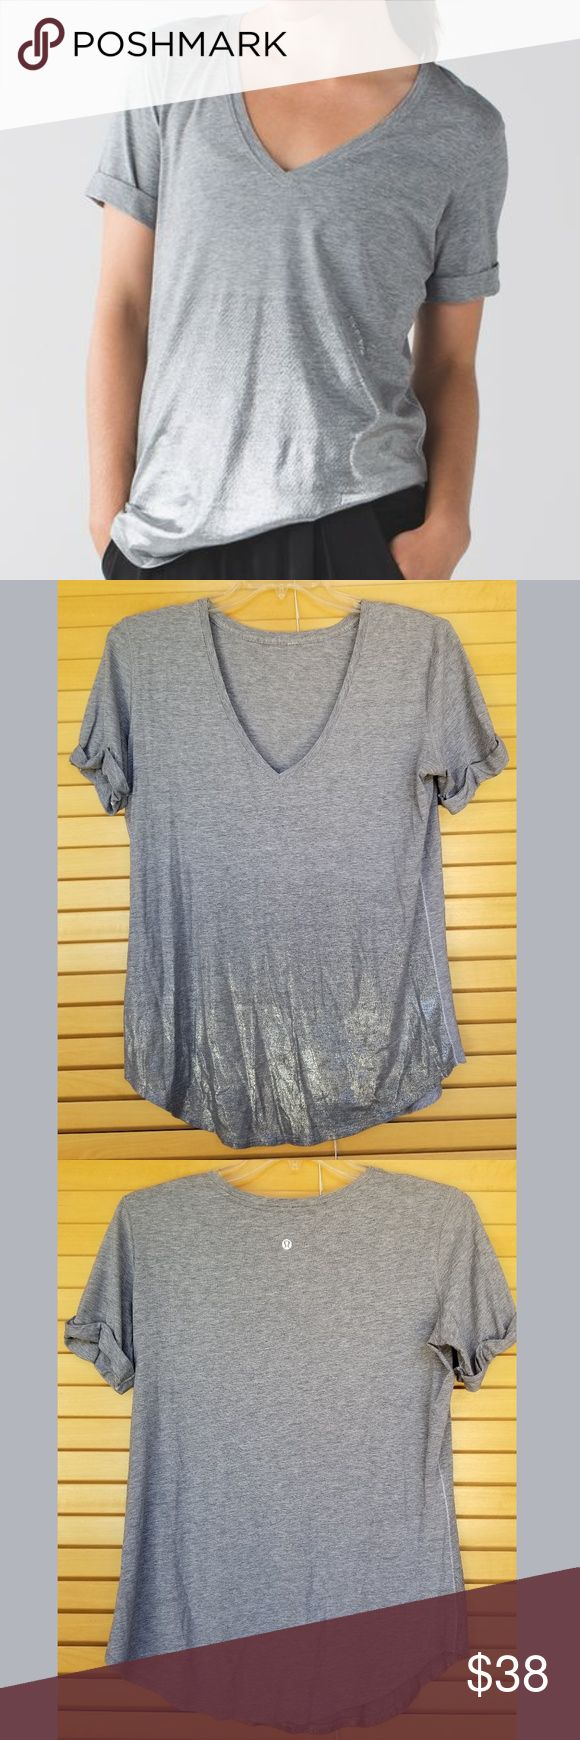 Lululemon Love Tee II in heathered grey w/ silver You can wear this tee anywhere! The soft fabric feels great against your skin and the curved hem is easy to tuck in.  Features Vitasea, which is soft with added LYCRA® fibre for great shape retention.  Wear the sleeves down or roll them up.  Designed not to shrink.  Designed for yoga/gym and to/from.  Loose fit and long length.  Great pre-owned condition.  Color is medium heathered grey and there's some metallic silver on the bottom front…